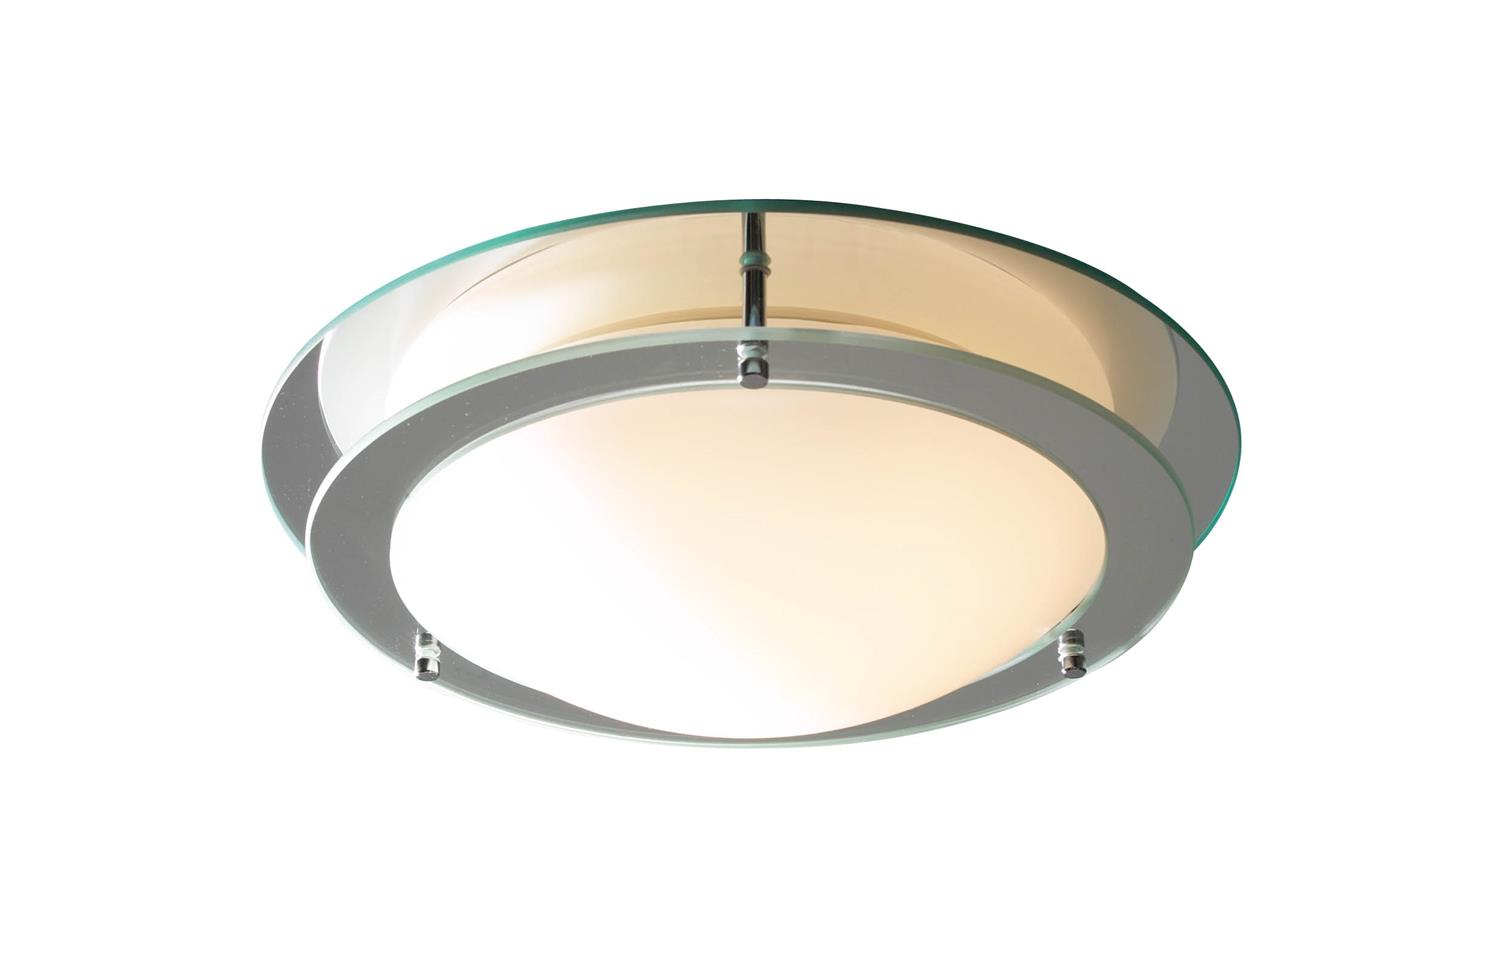 Dar LIB50 Libra Bathroom Flush Fitting in Mirrored & Chrome